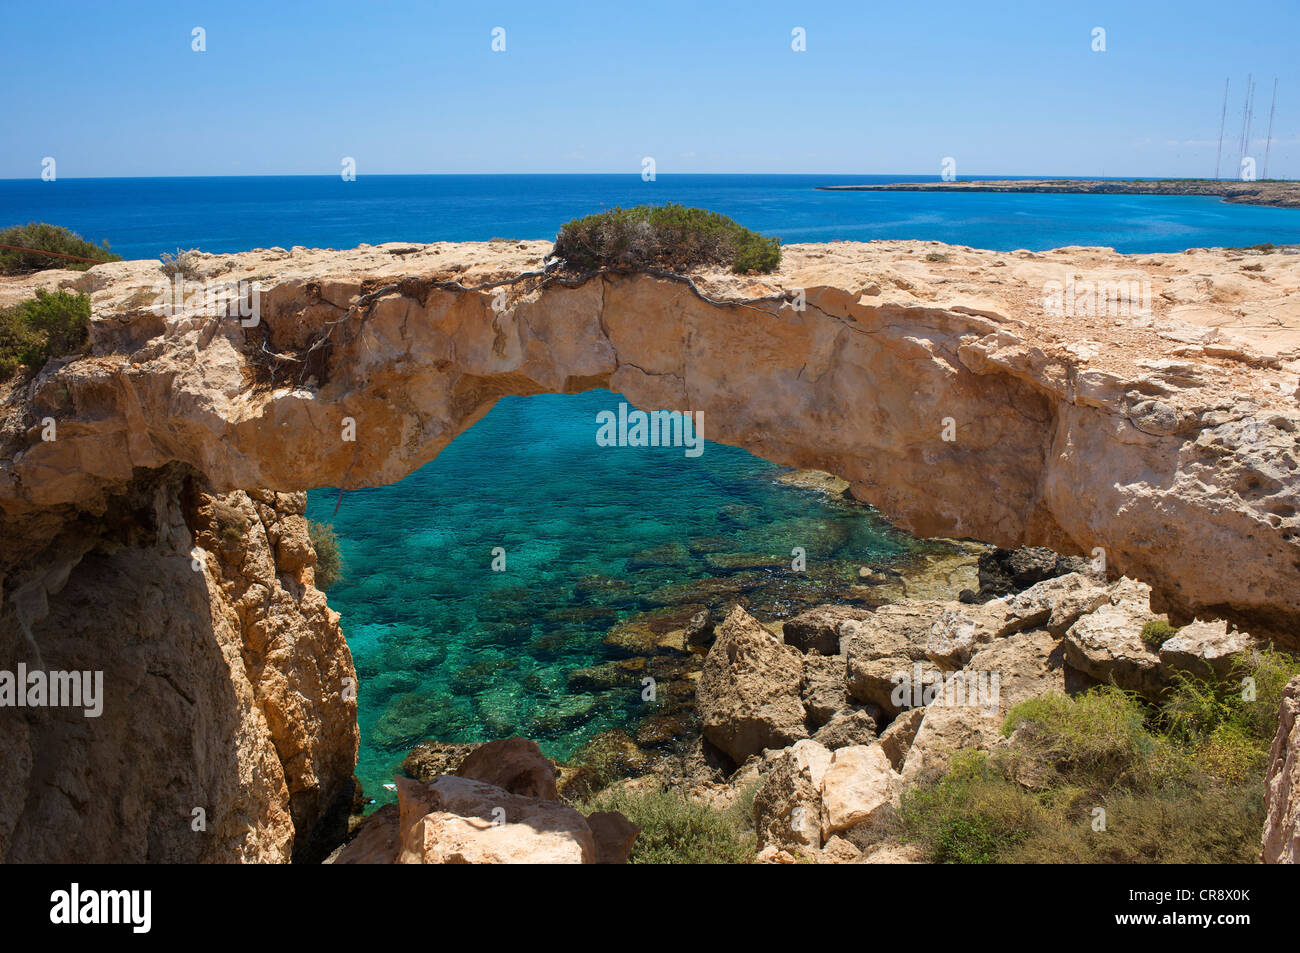 Natural arch at Cape Greco in Ayia Napa, Southern Cyprus, Cyprus - Stock Image